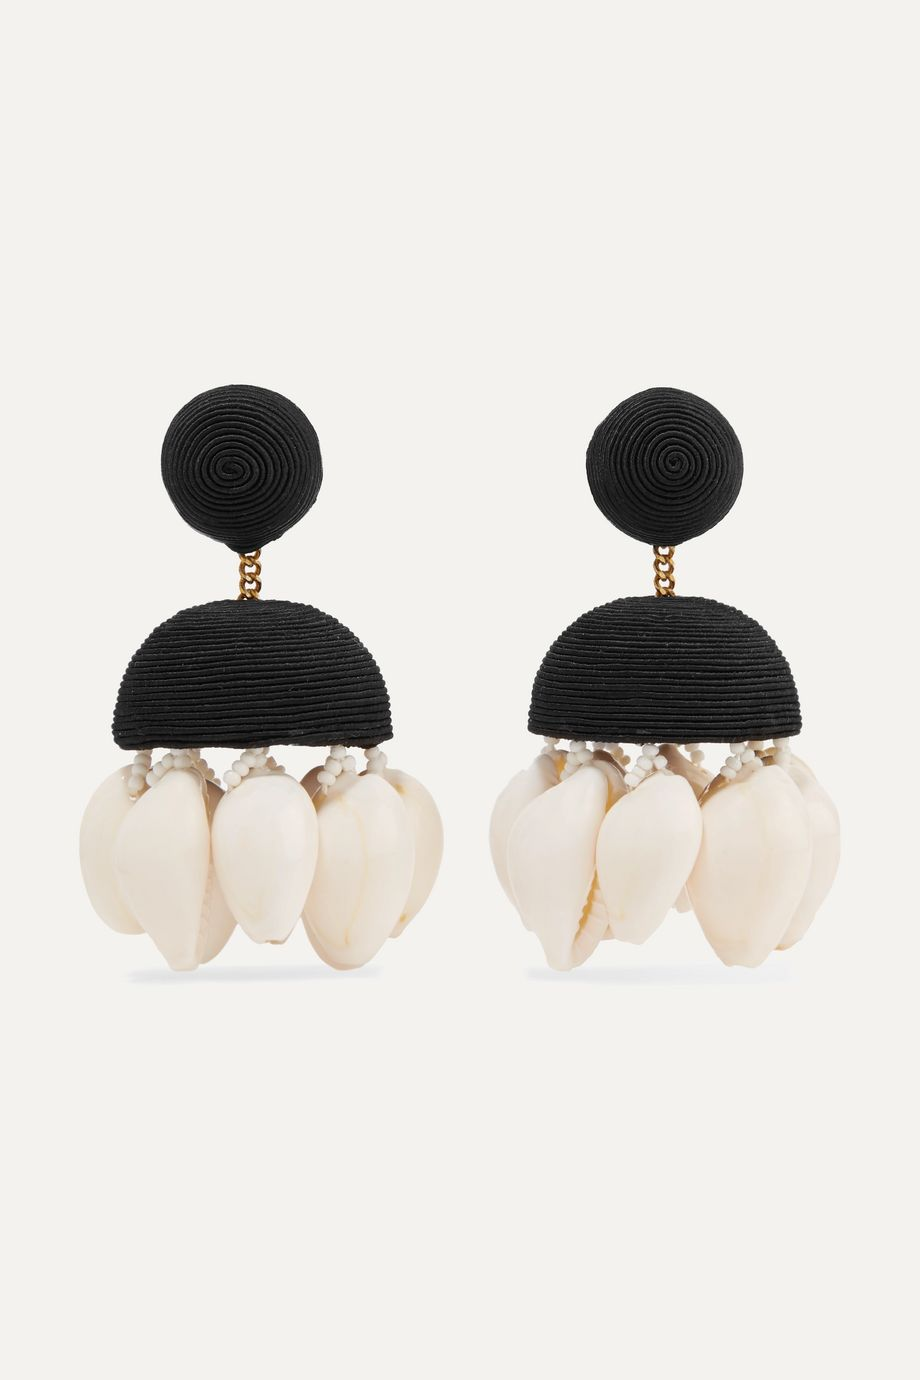 Rebecca de Ravenel + Aquazzura Riviera cord, bead and shell clip earrings